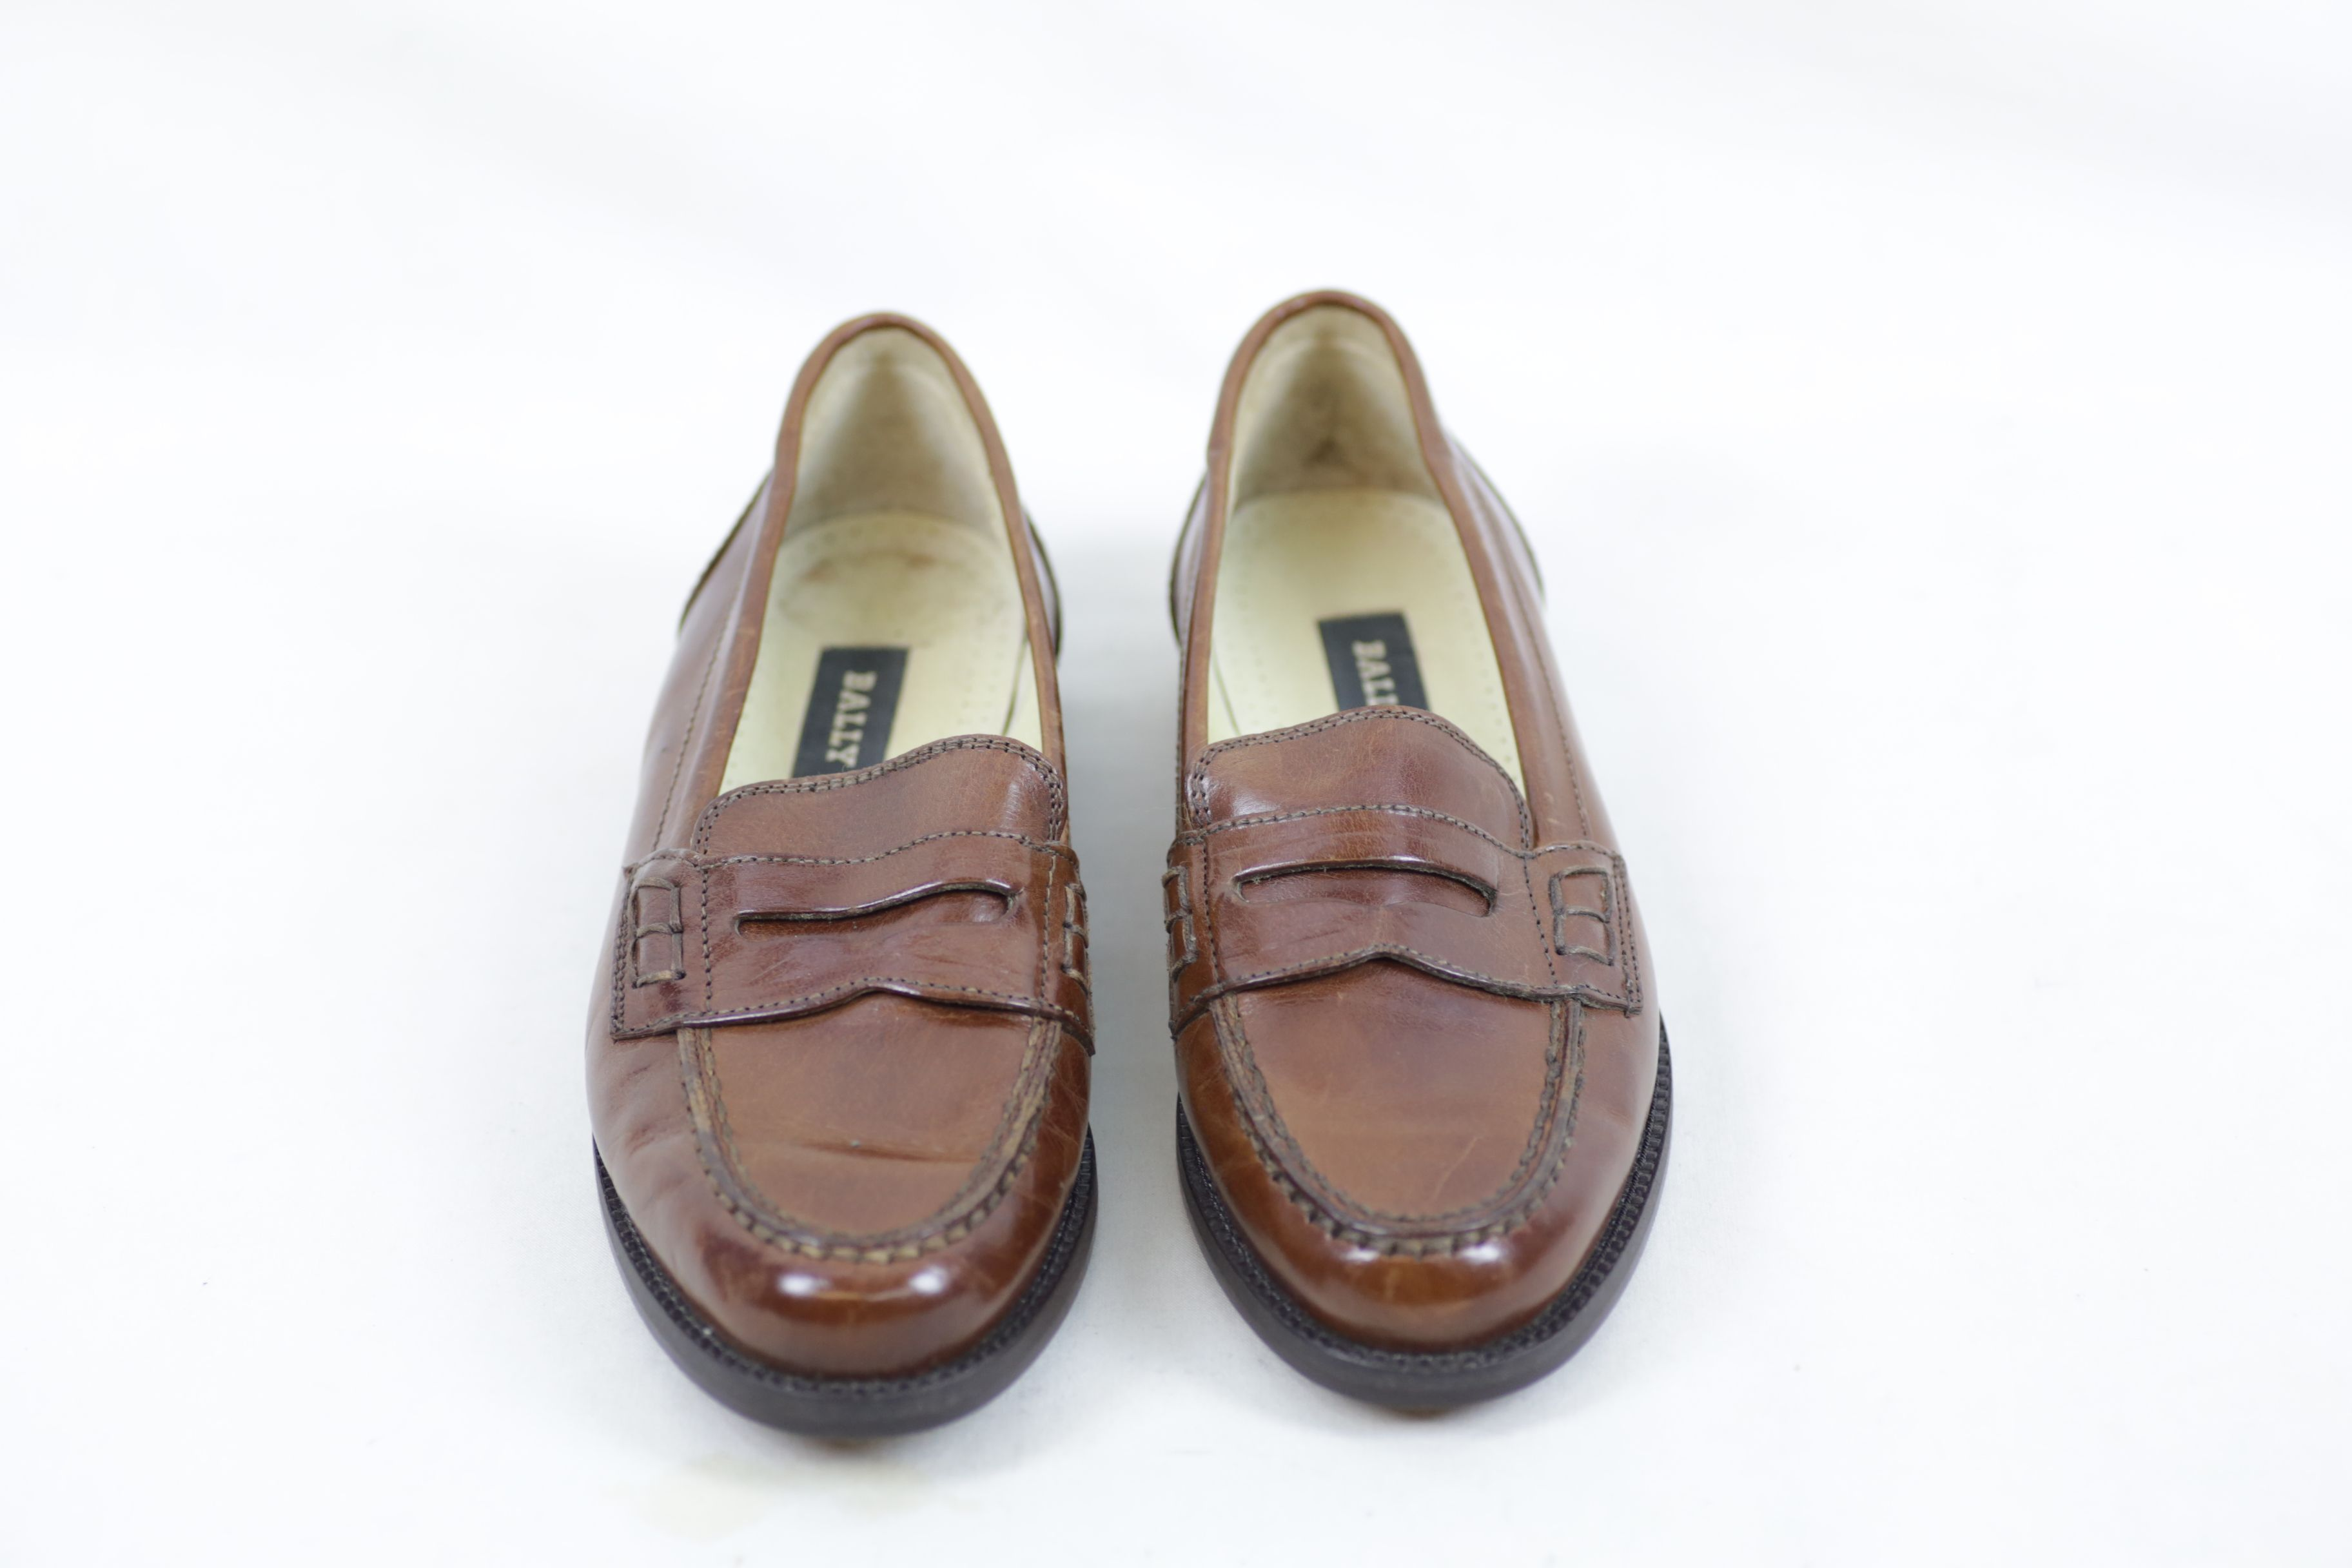 Bally Brim Classic Mid Brown Leather Shoes / Loafers - Size EU 36.5 UK 3.5 1